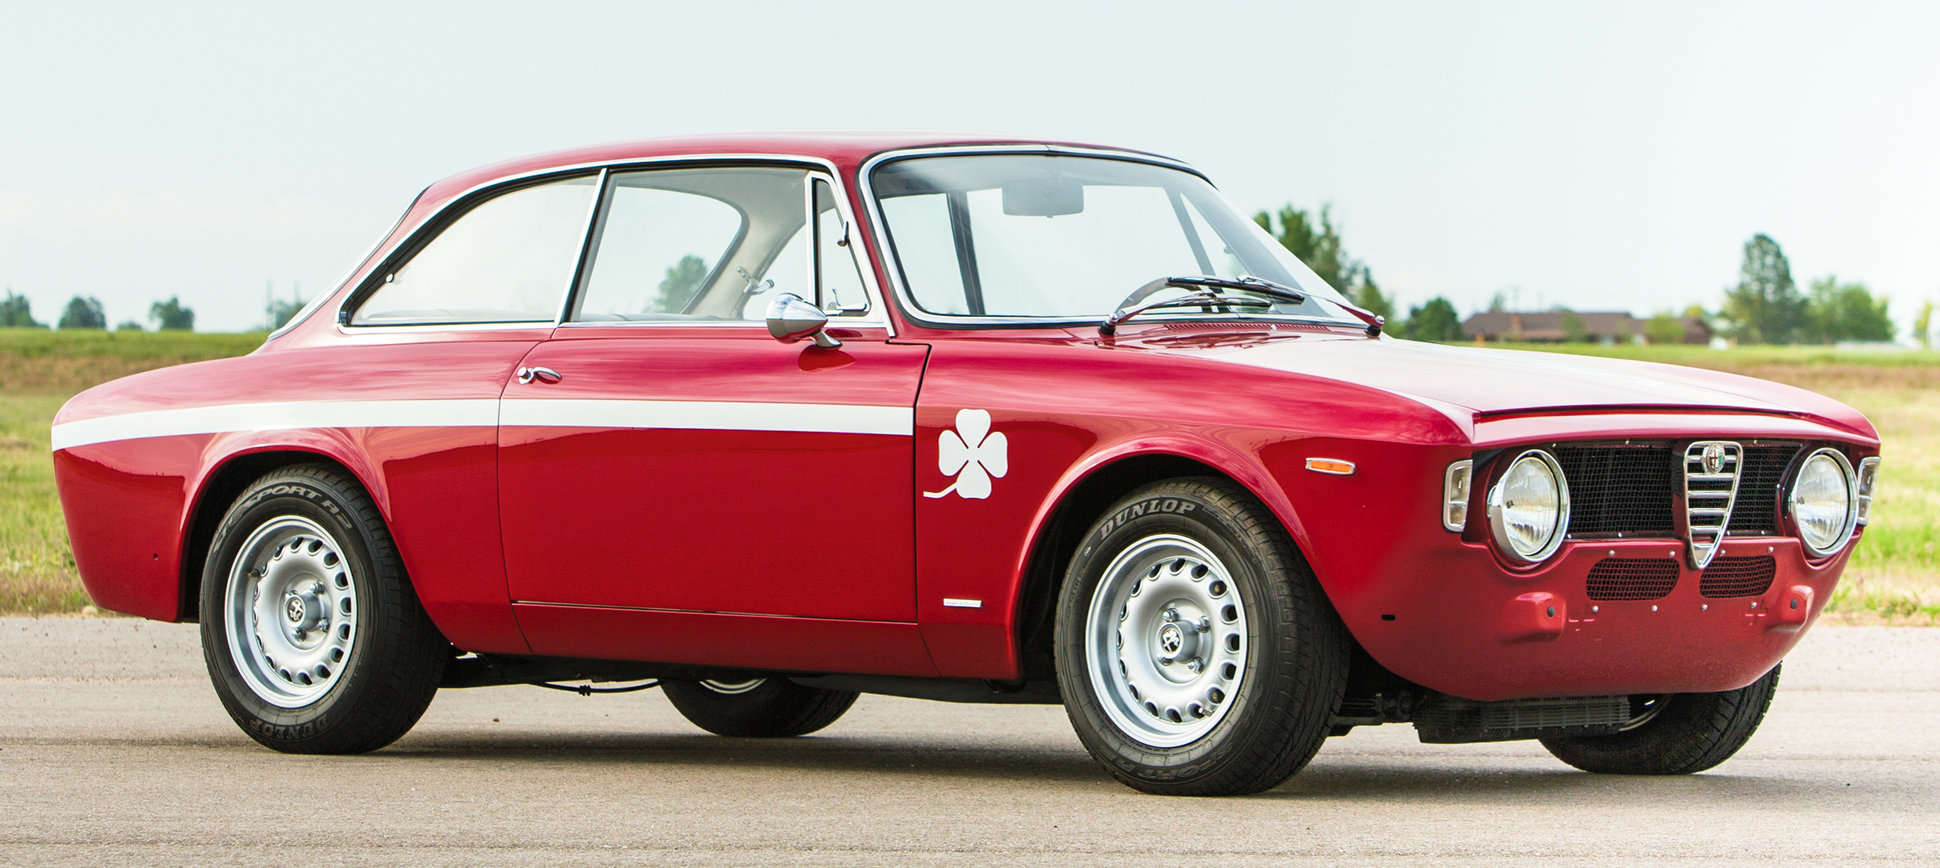 Cars alfa romeo gta coupe #12